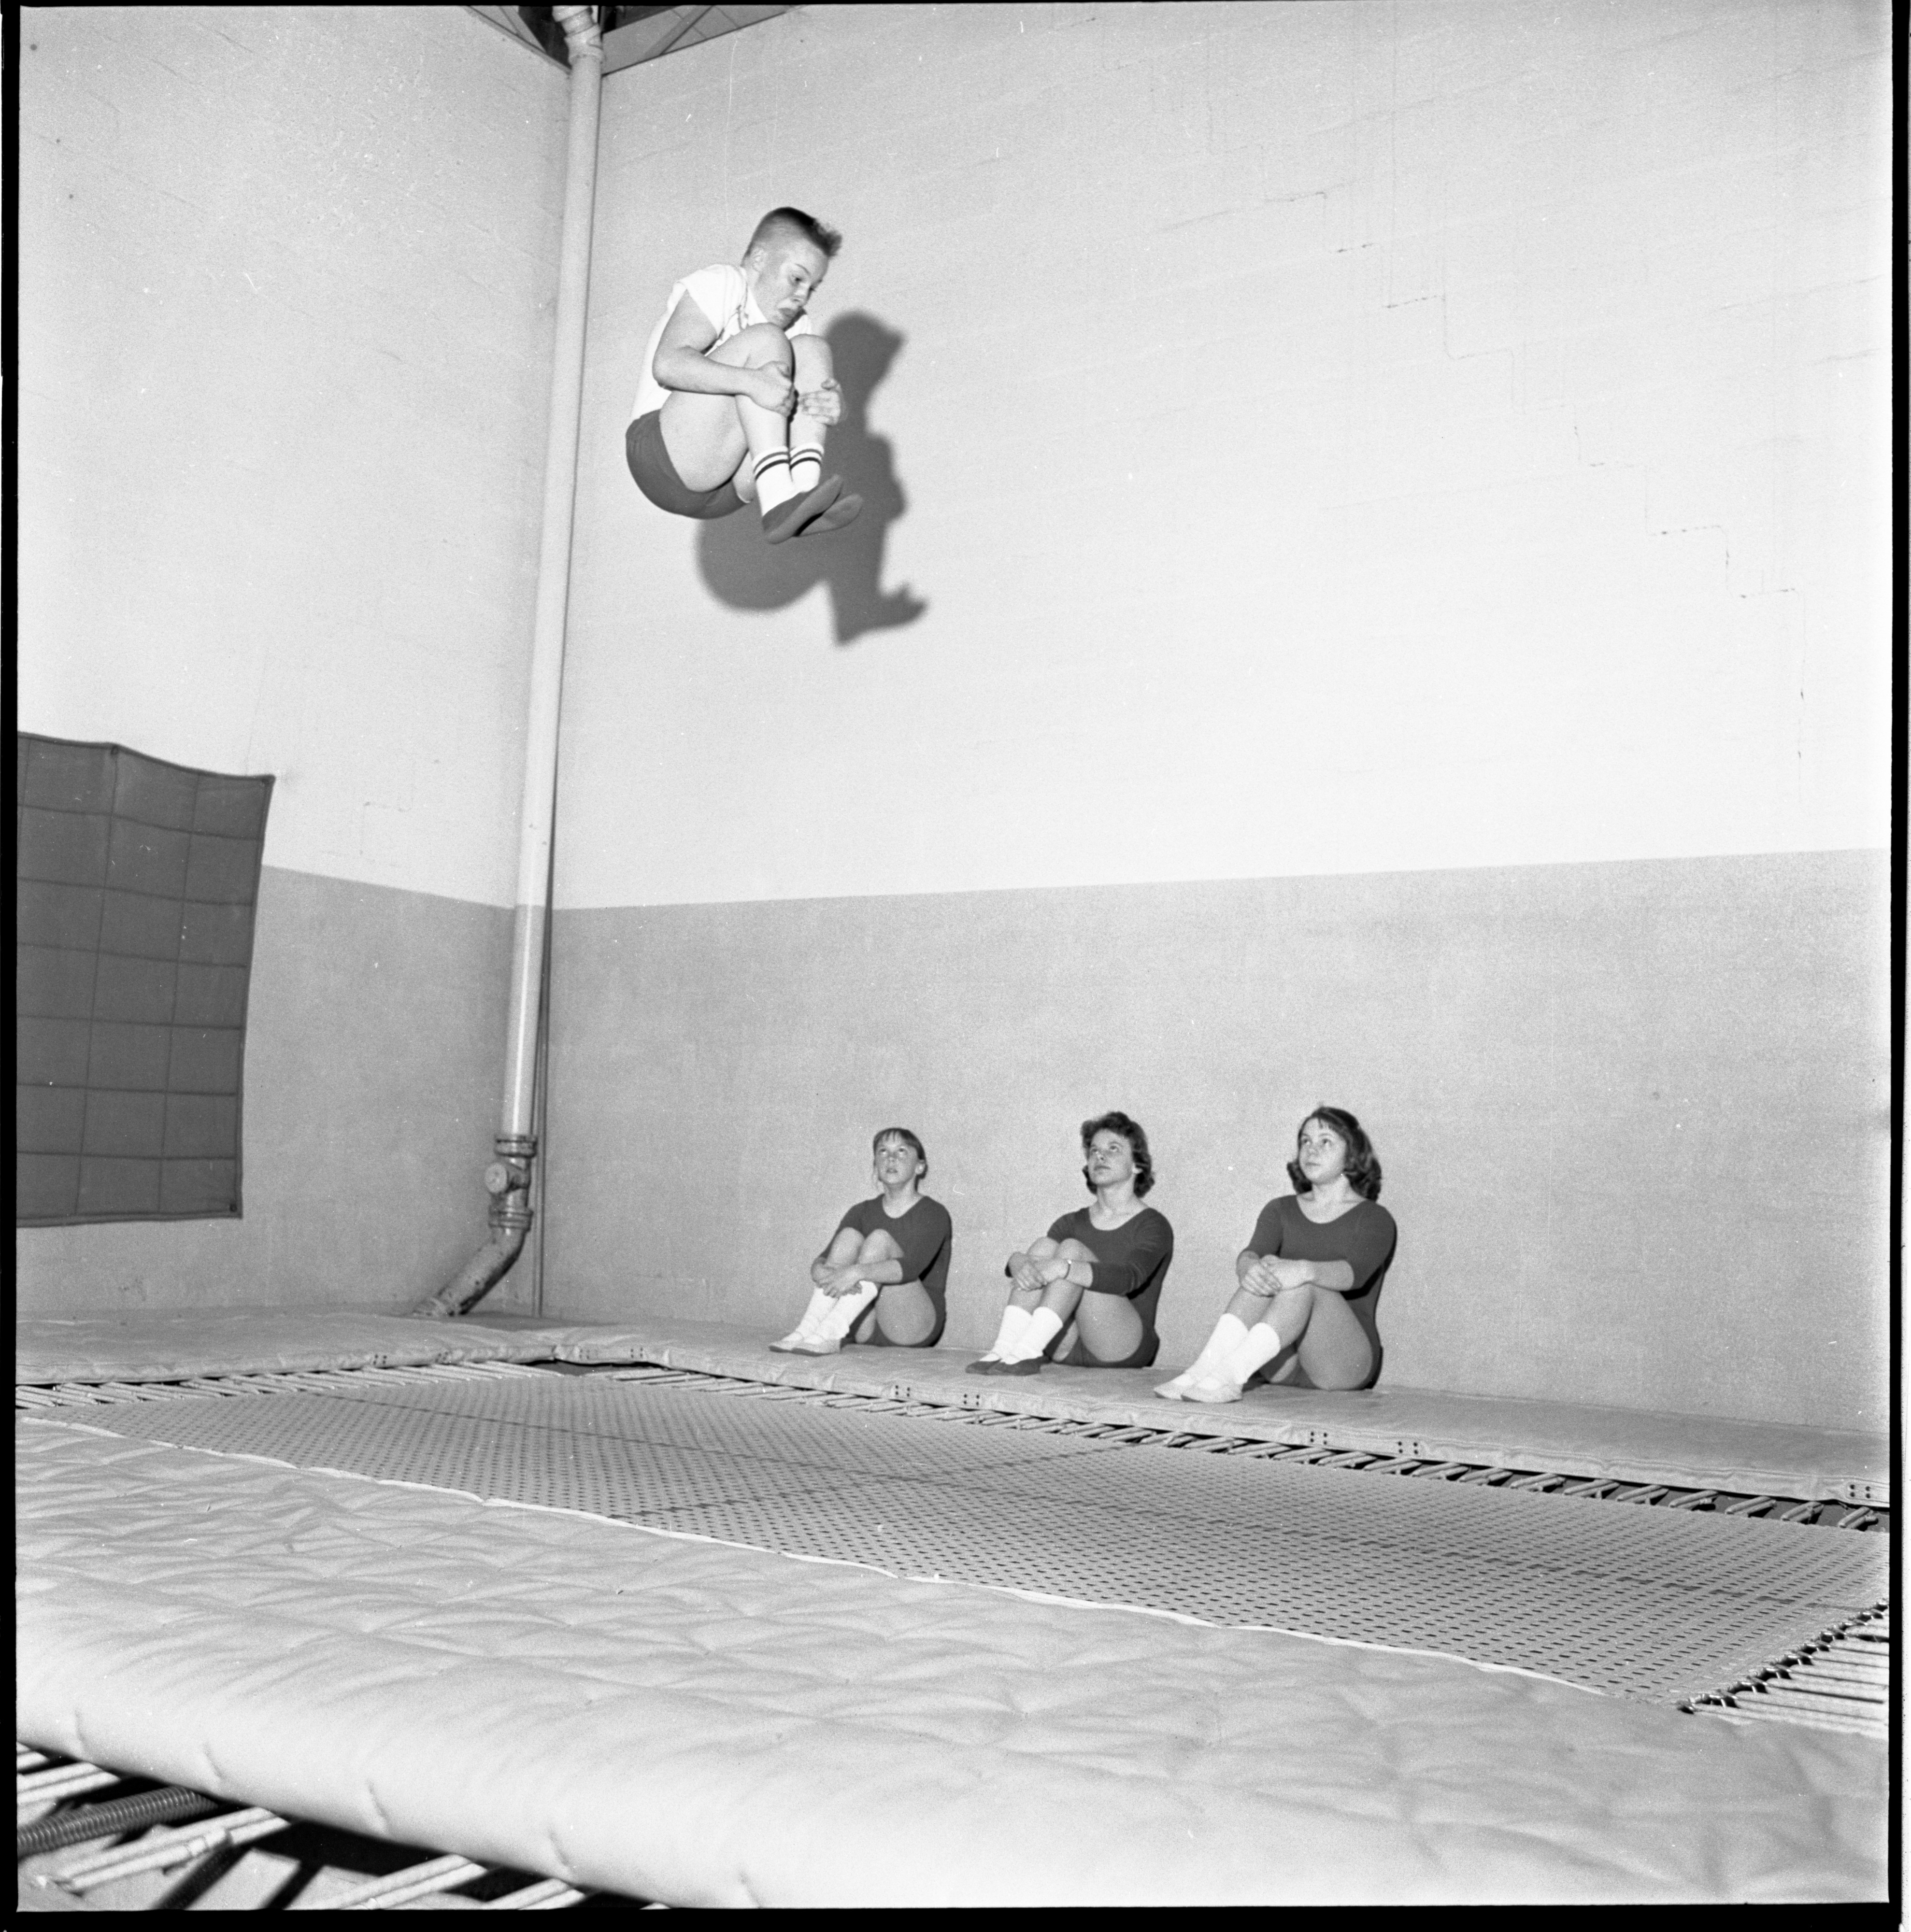 George Huntzicker Practices His Trampoline Championships Routine, April 1961 image